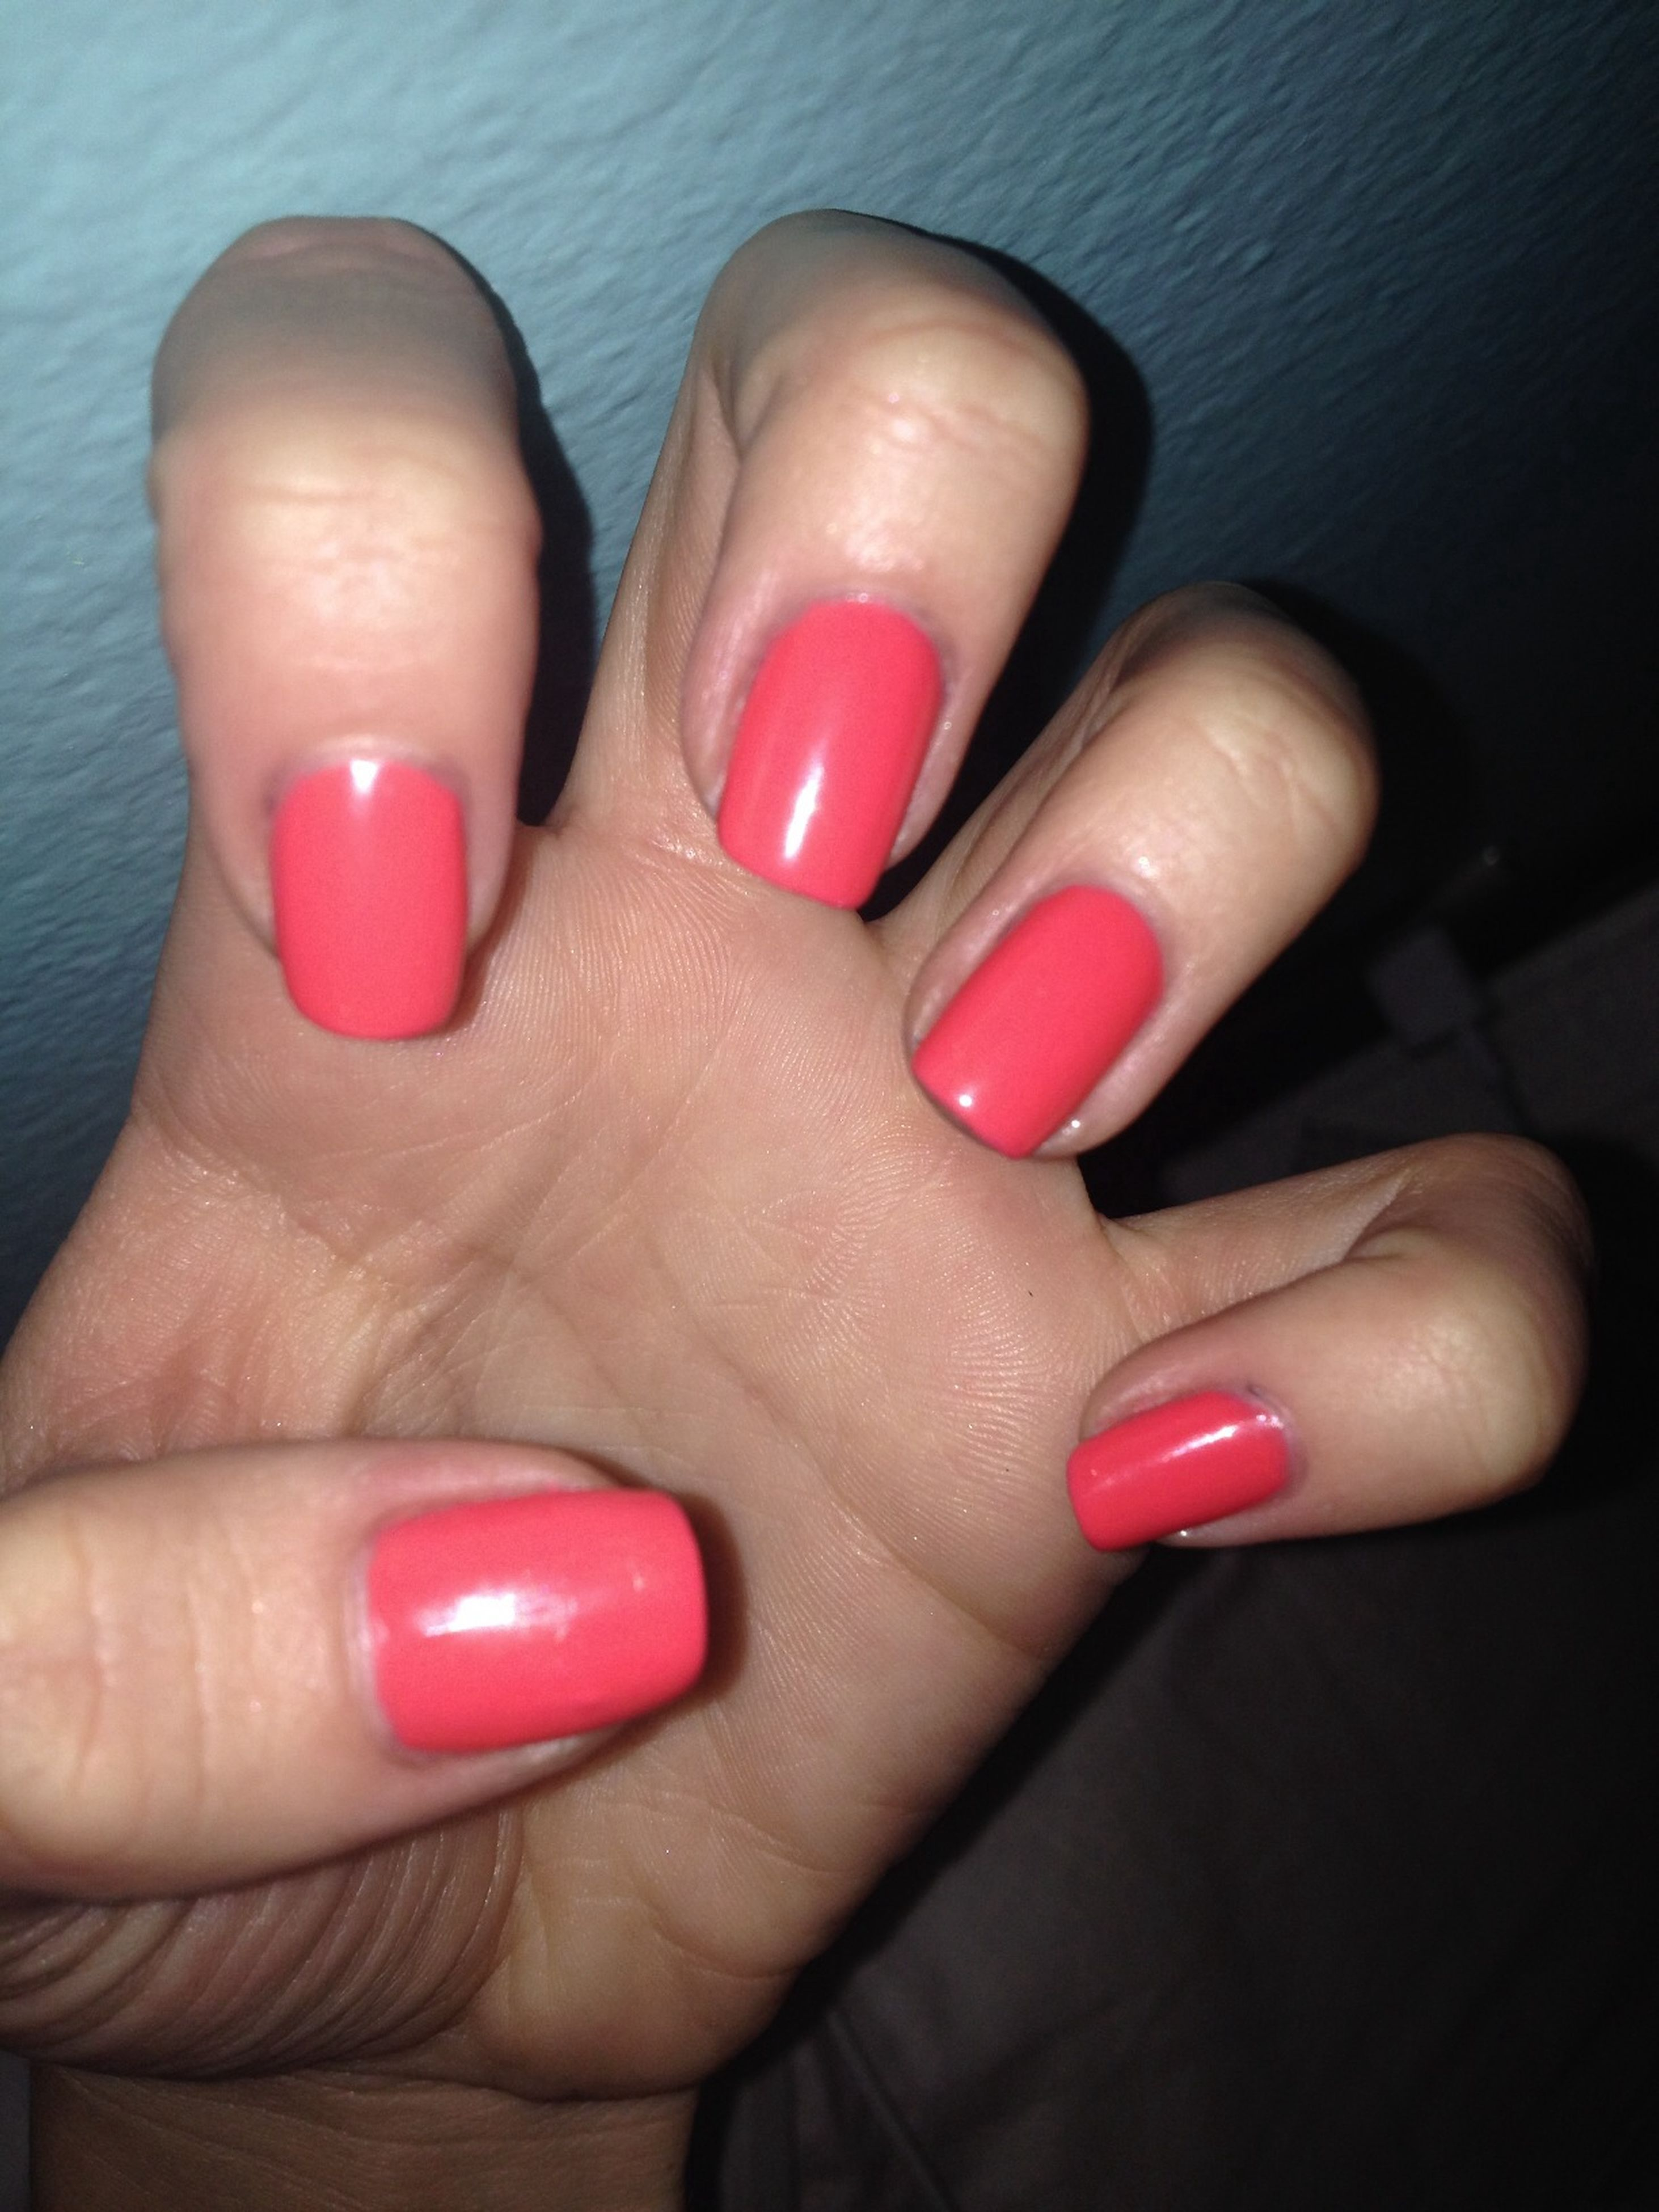 person, part of, indoors, human finger, holding, cropped, red, personal perspective, nail polish, high angle view, unrecognizable person, close-up, lifestyles, multi colored, leisure activity, fashion